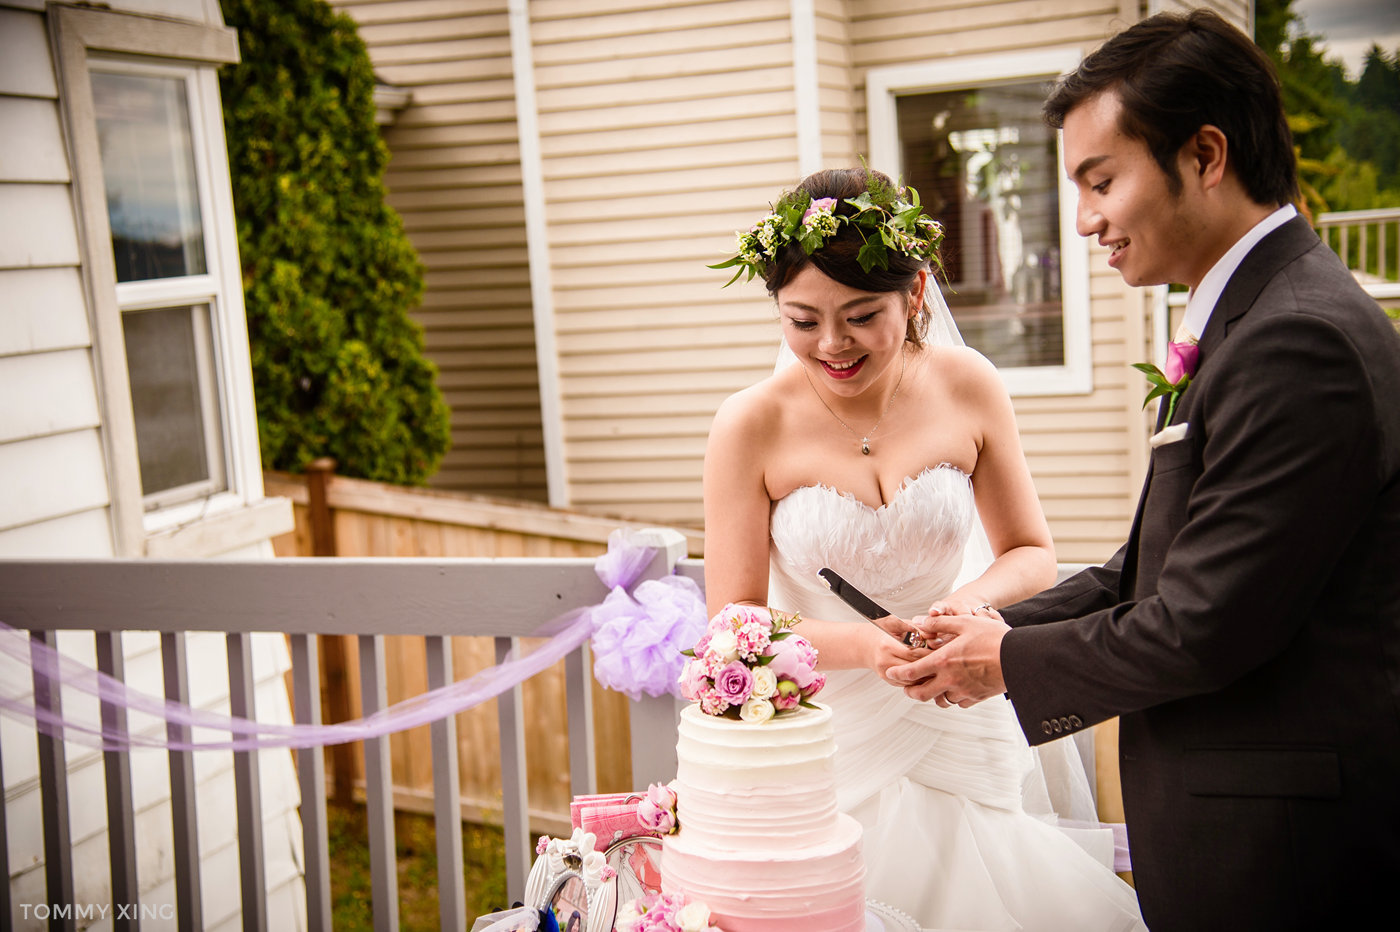 Seattle Wedding and pre wedding Los Angeles Tommy Xing Photography 西雅图洛杉矶旧金山婚礼婚纱照摄影师 143.jpg